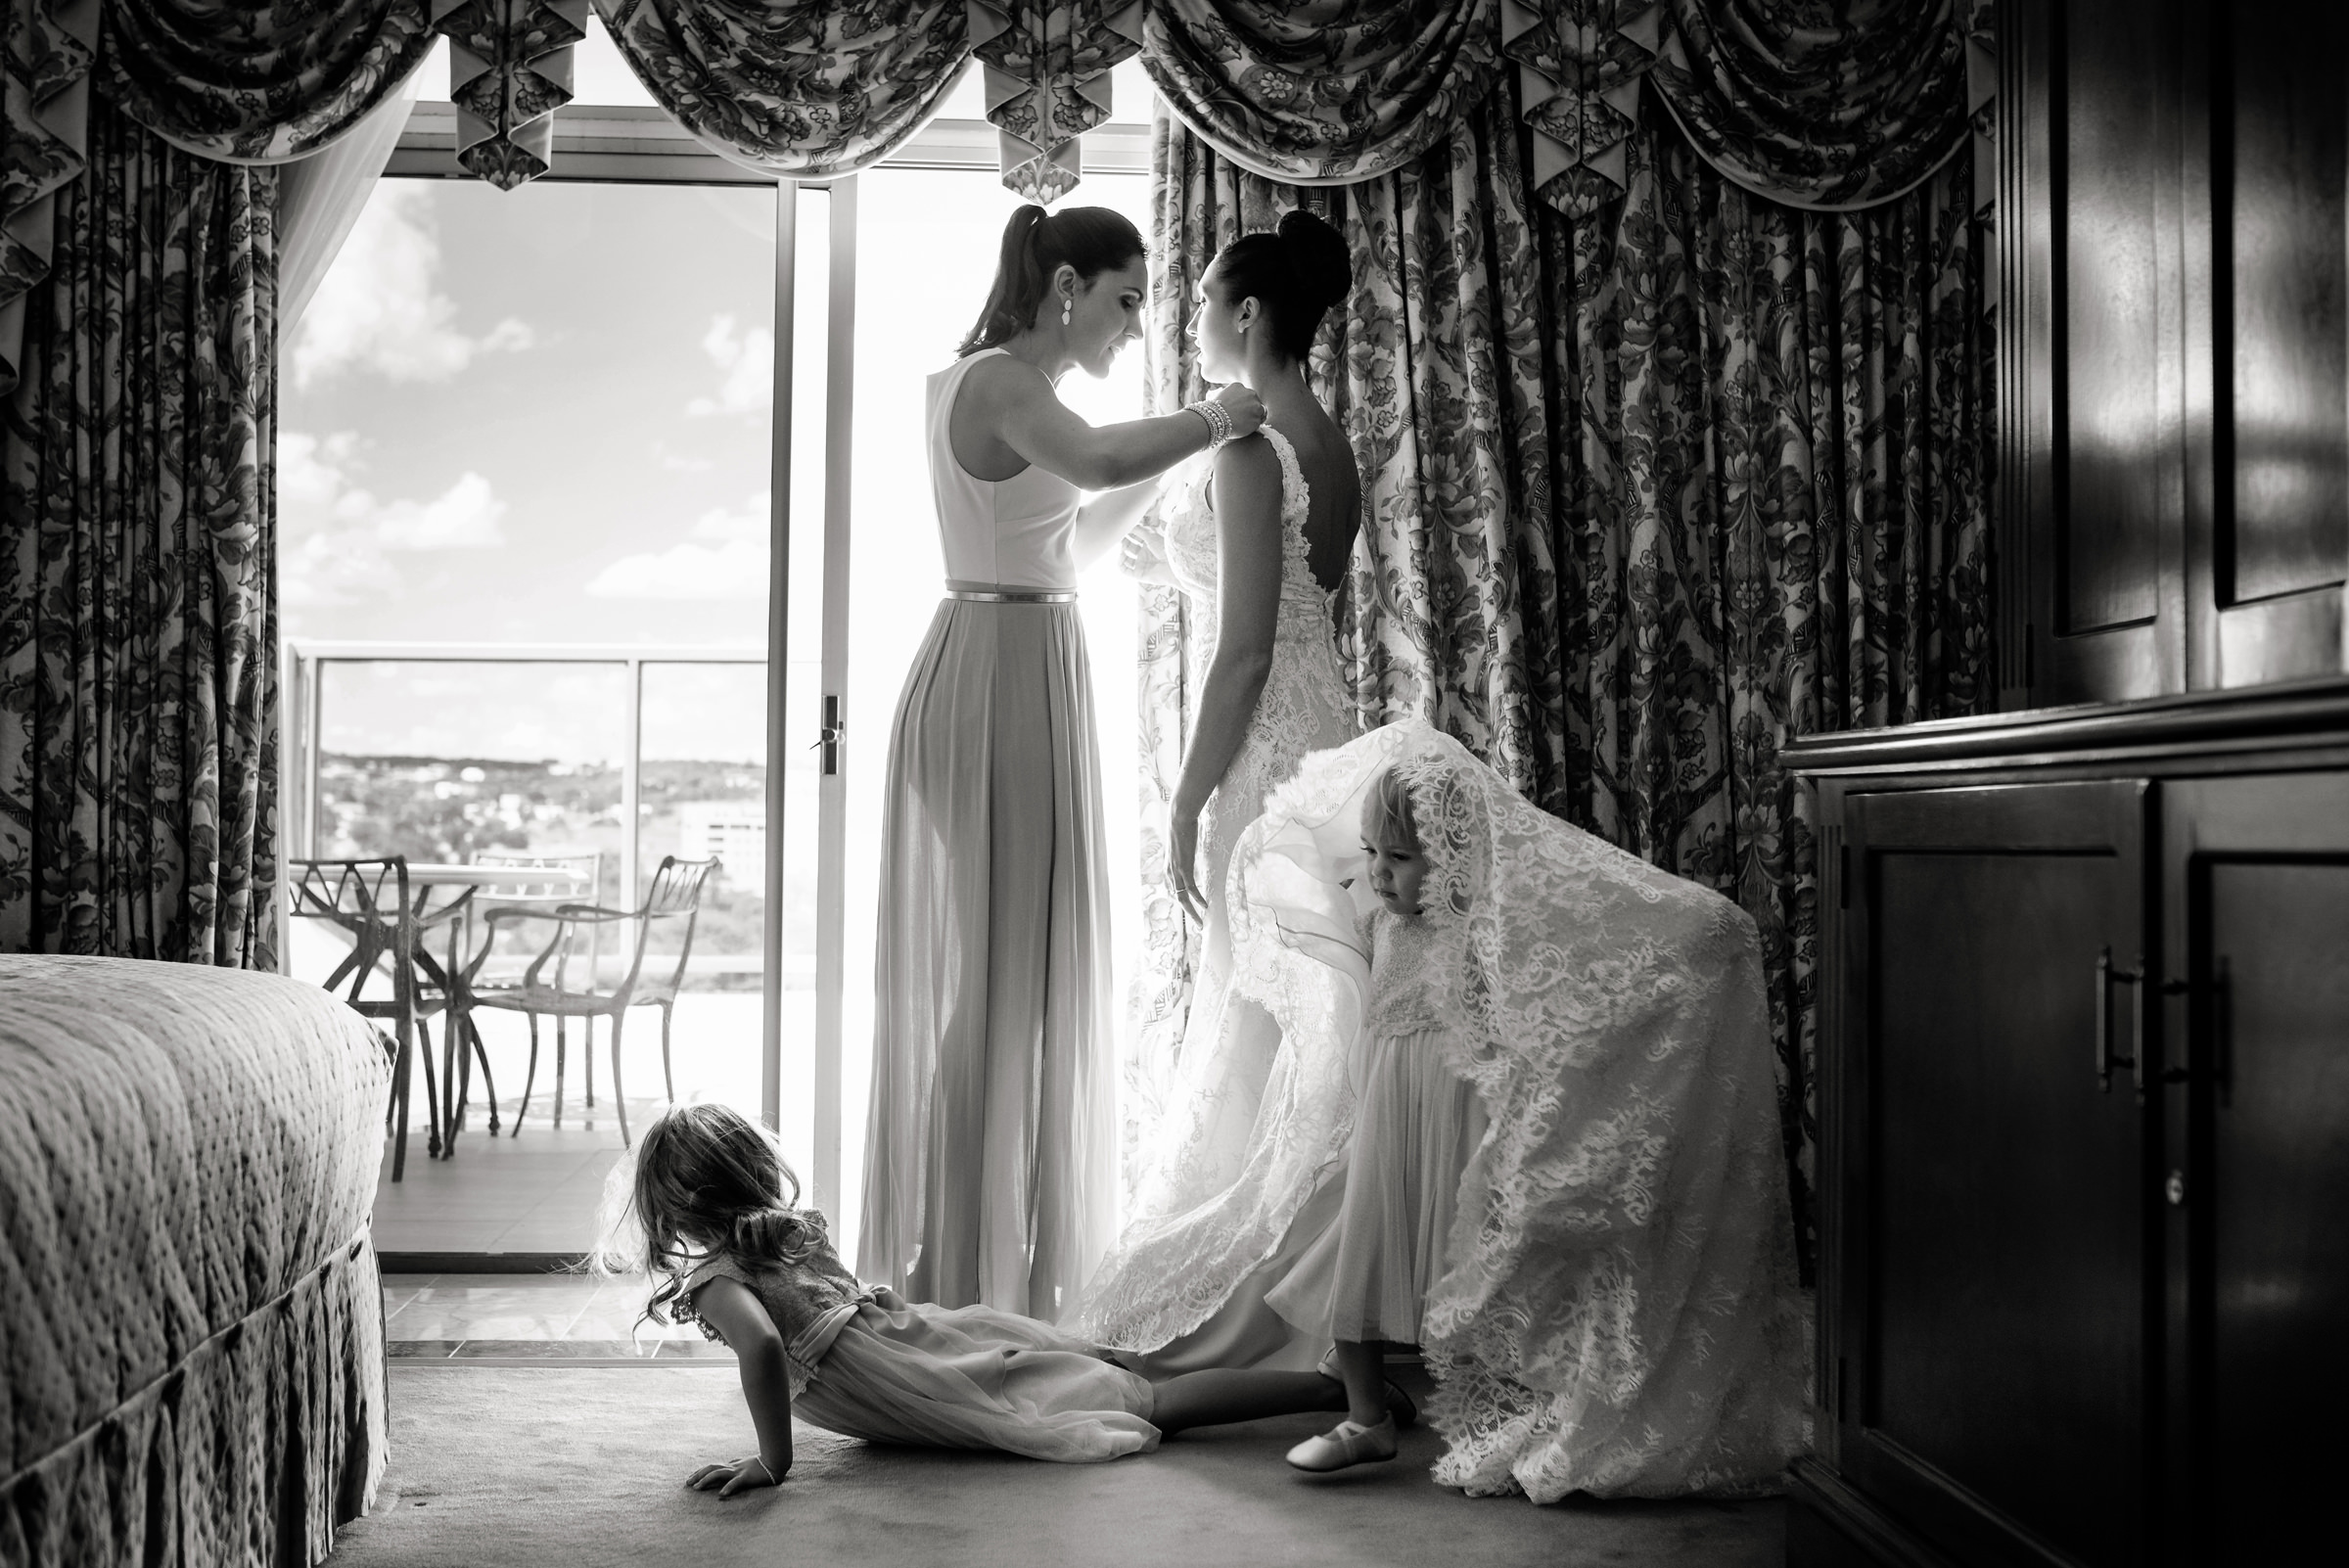 Little girls play under wedding train while bride gets ready - photo by Jacki Bruniquel